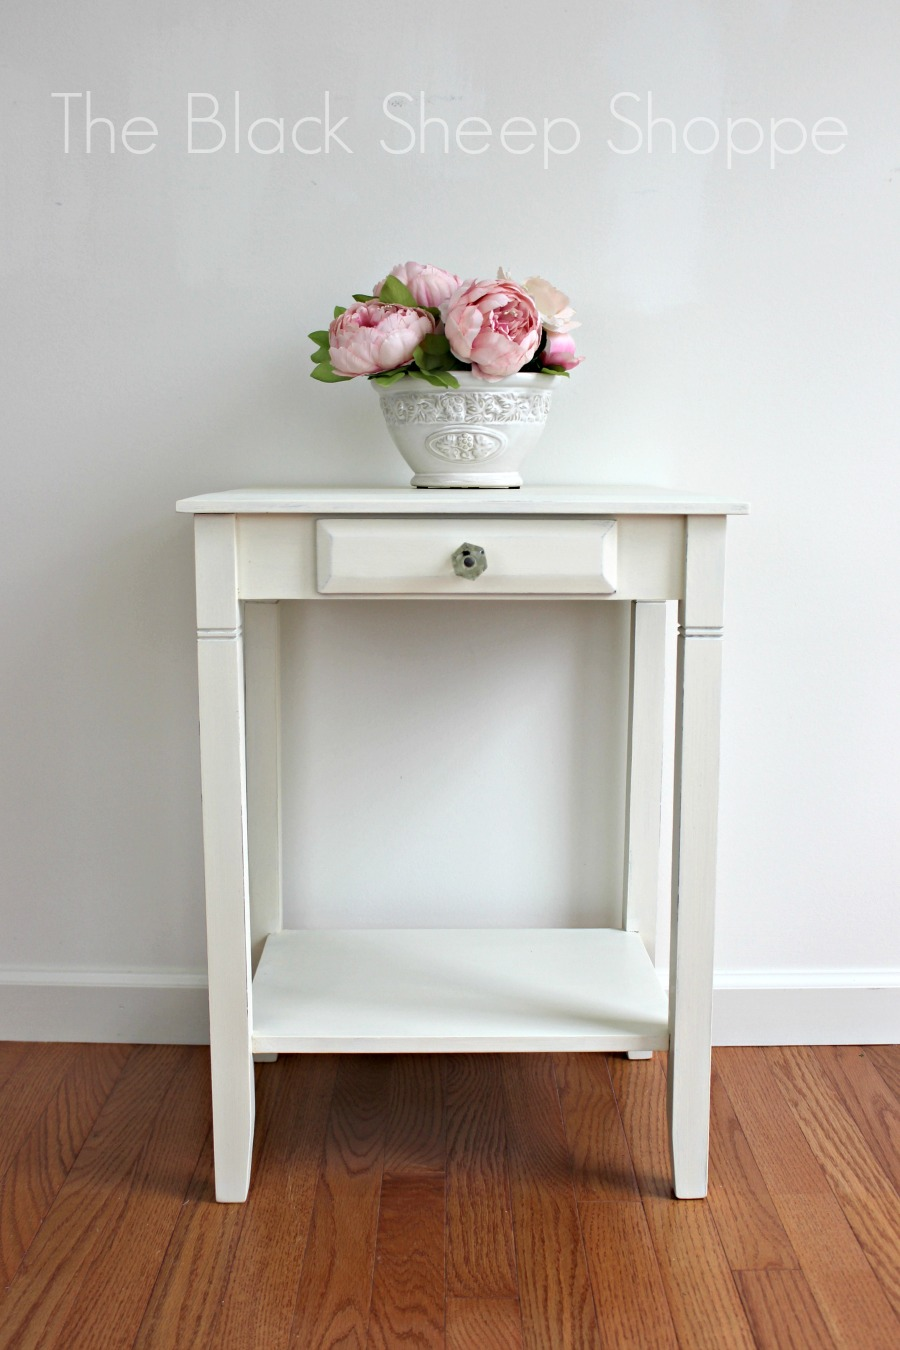 Nightstand painted in Old White.